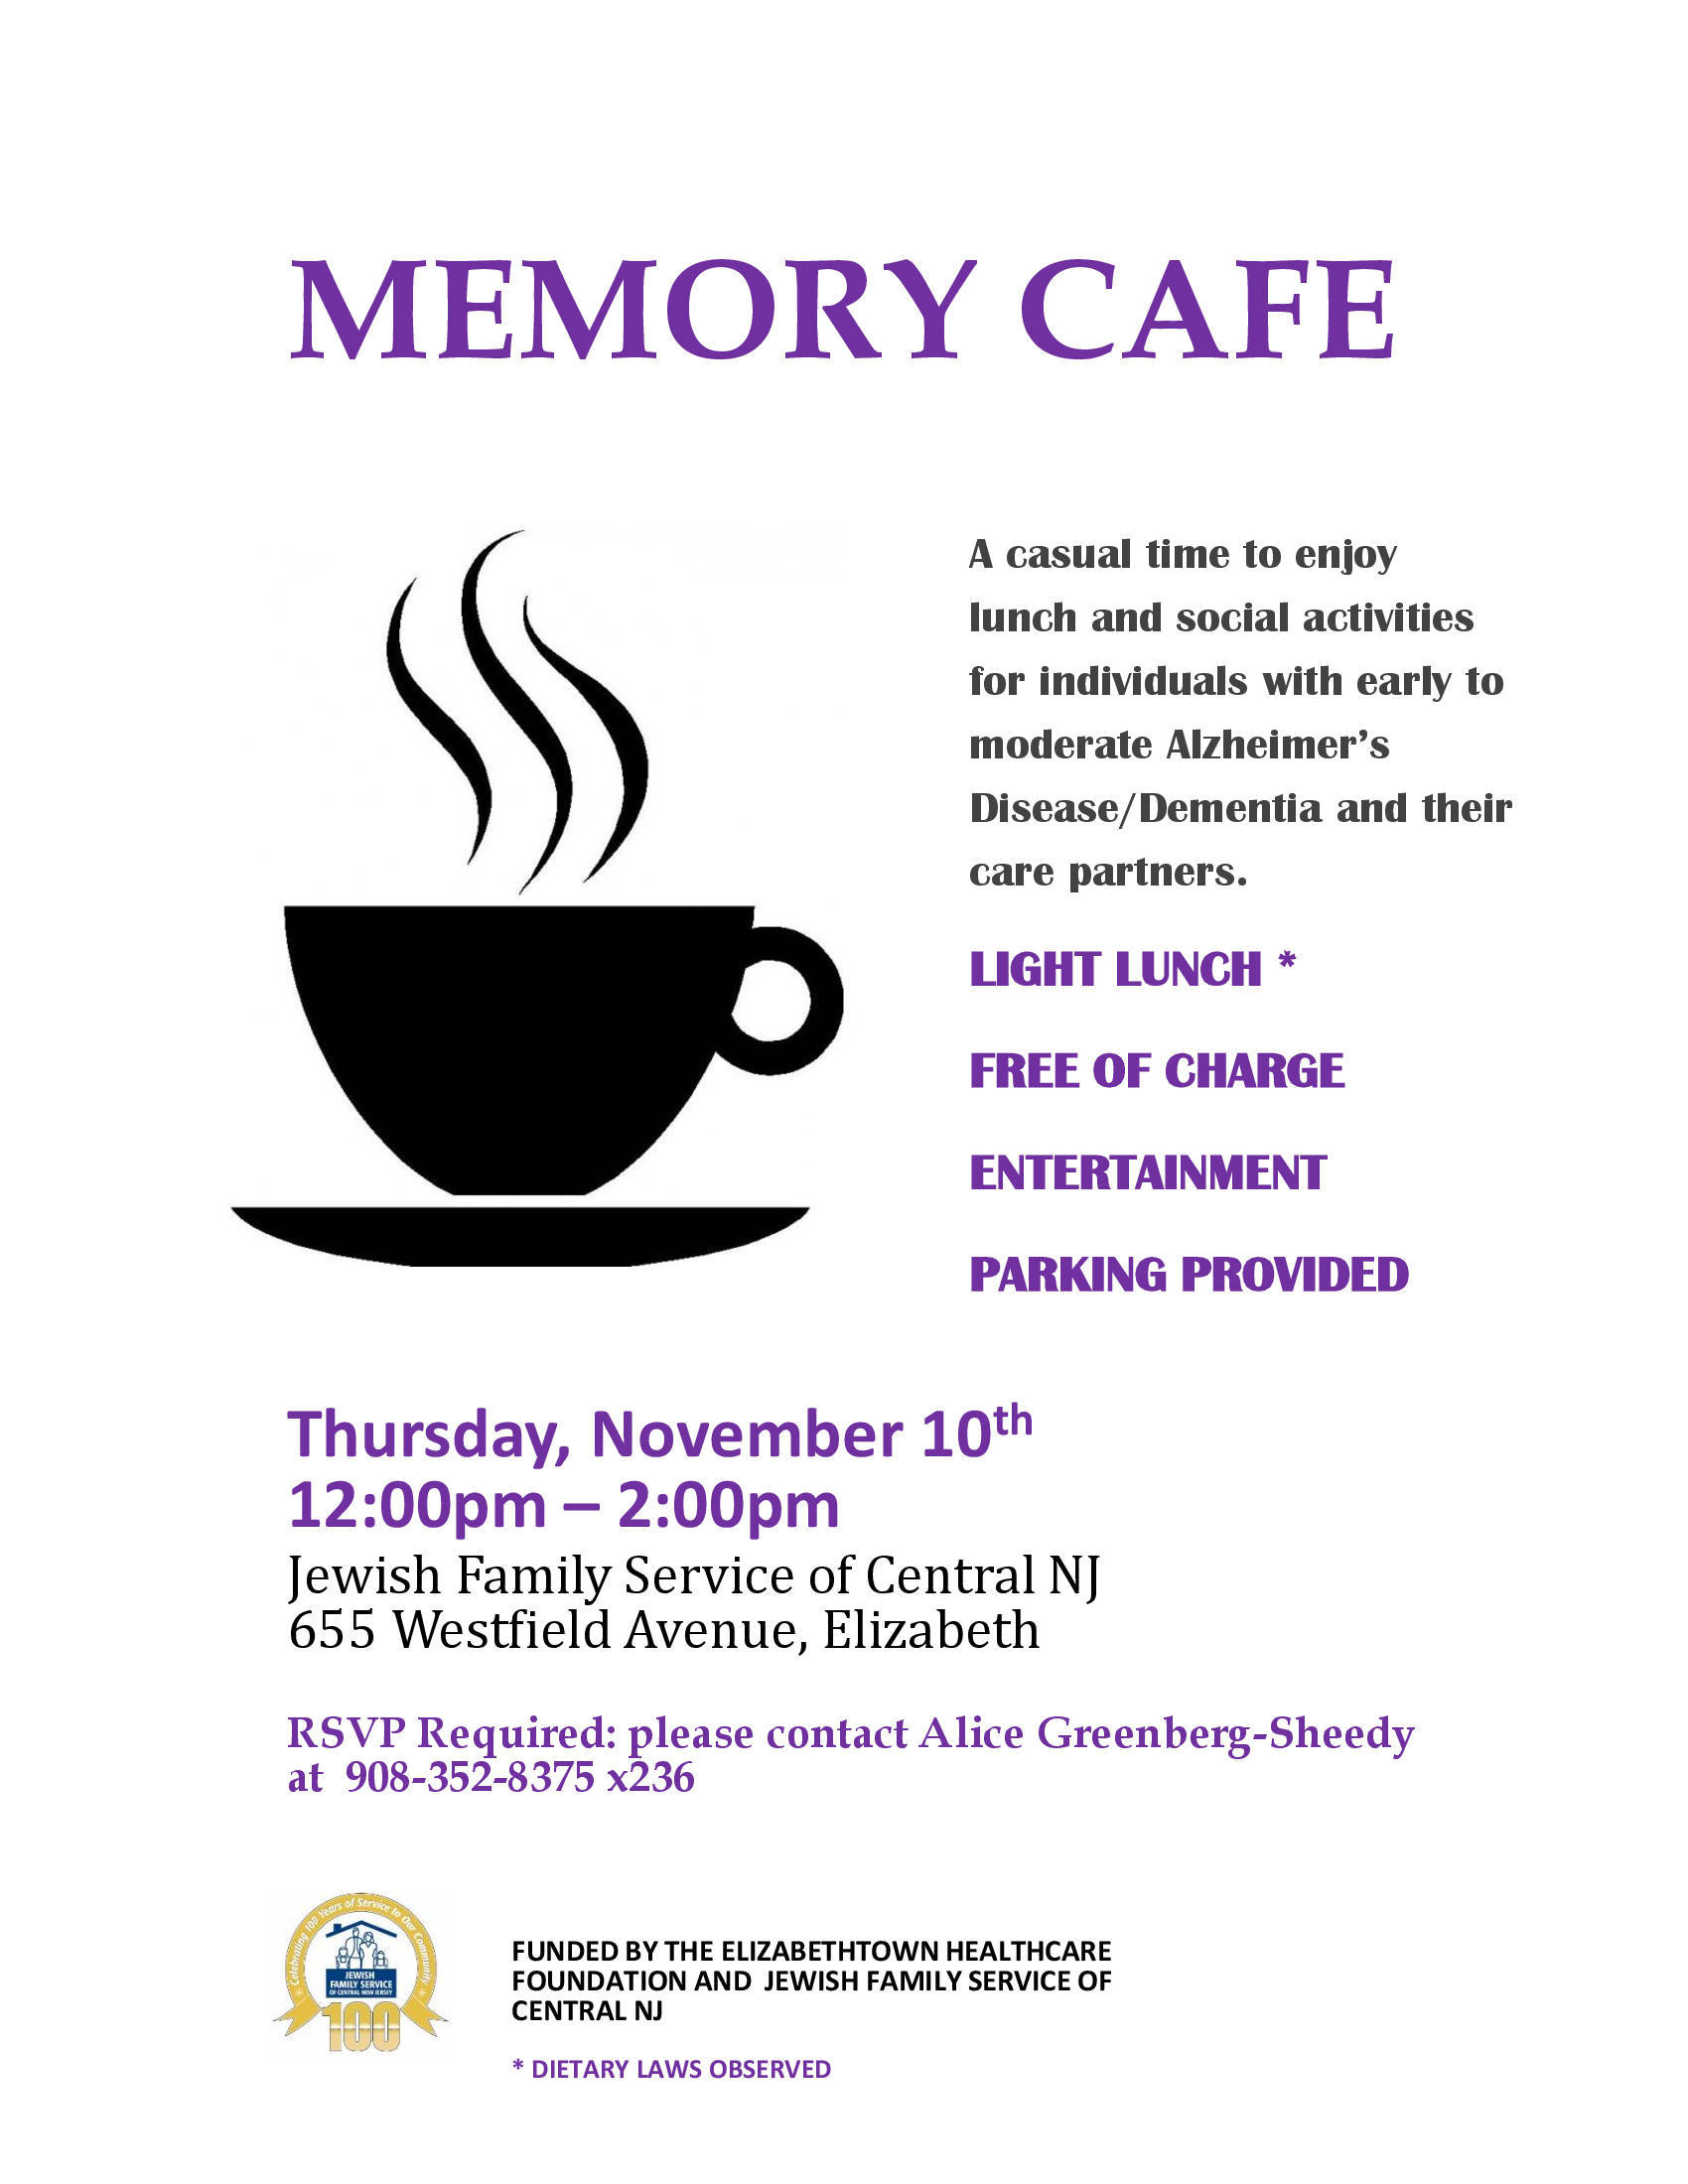 4cd866ee3e715758c528_Memory-Cafe-Flyer.jpg